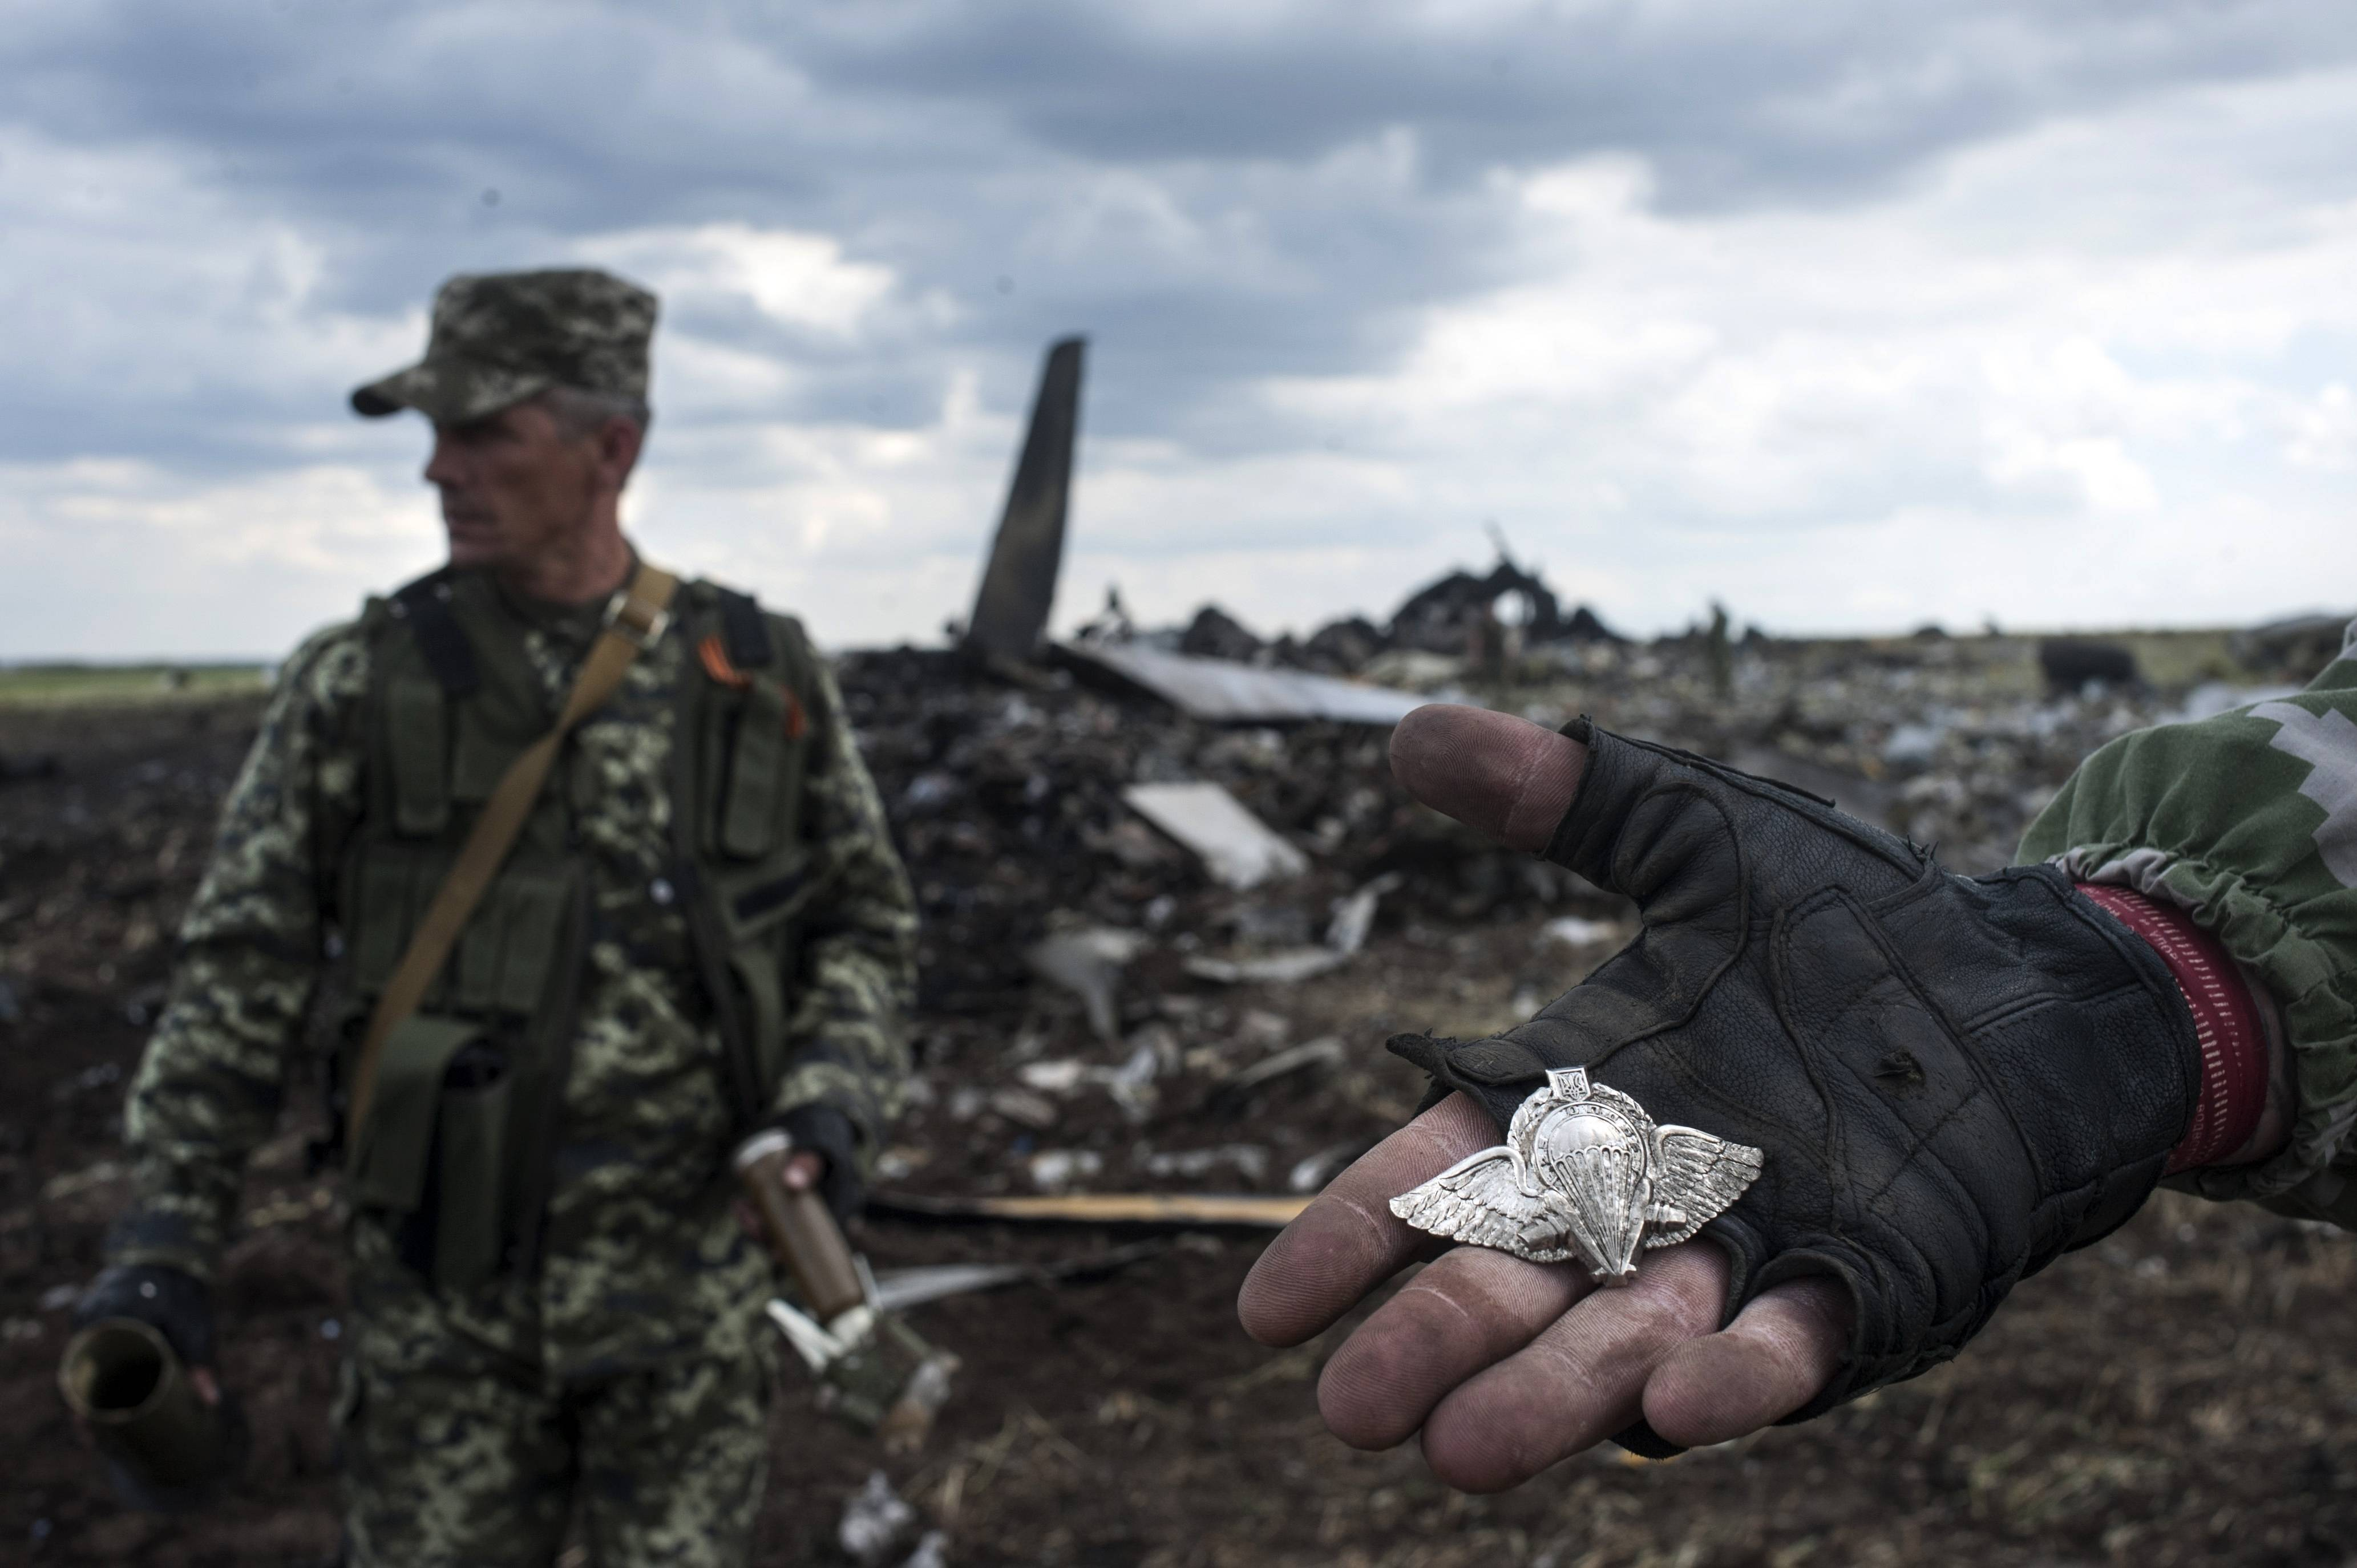 A pro-Russian fighter shows a Ukrainian paratroopers emblem as the other one carries parts of weapons form the site of remnants of a downed Ukrainian army aircraft Il-76 at the airport near Luhansk, Ukraine, Saturday, June 14. Pro-Russian separatists shot down the military transport plane Saturday in the country's restive east, killing all 49 service personnel on board, Ukrainian officials said.